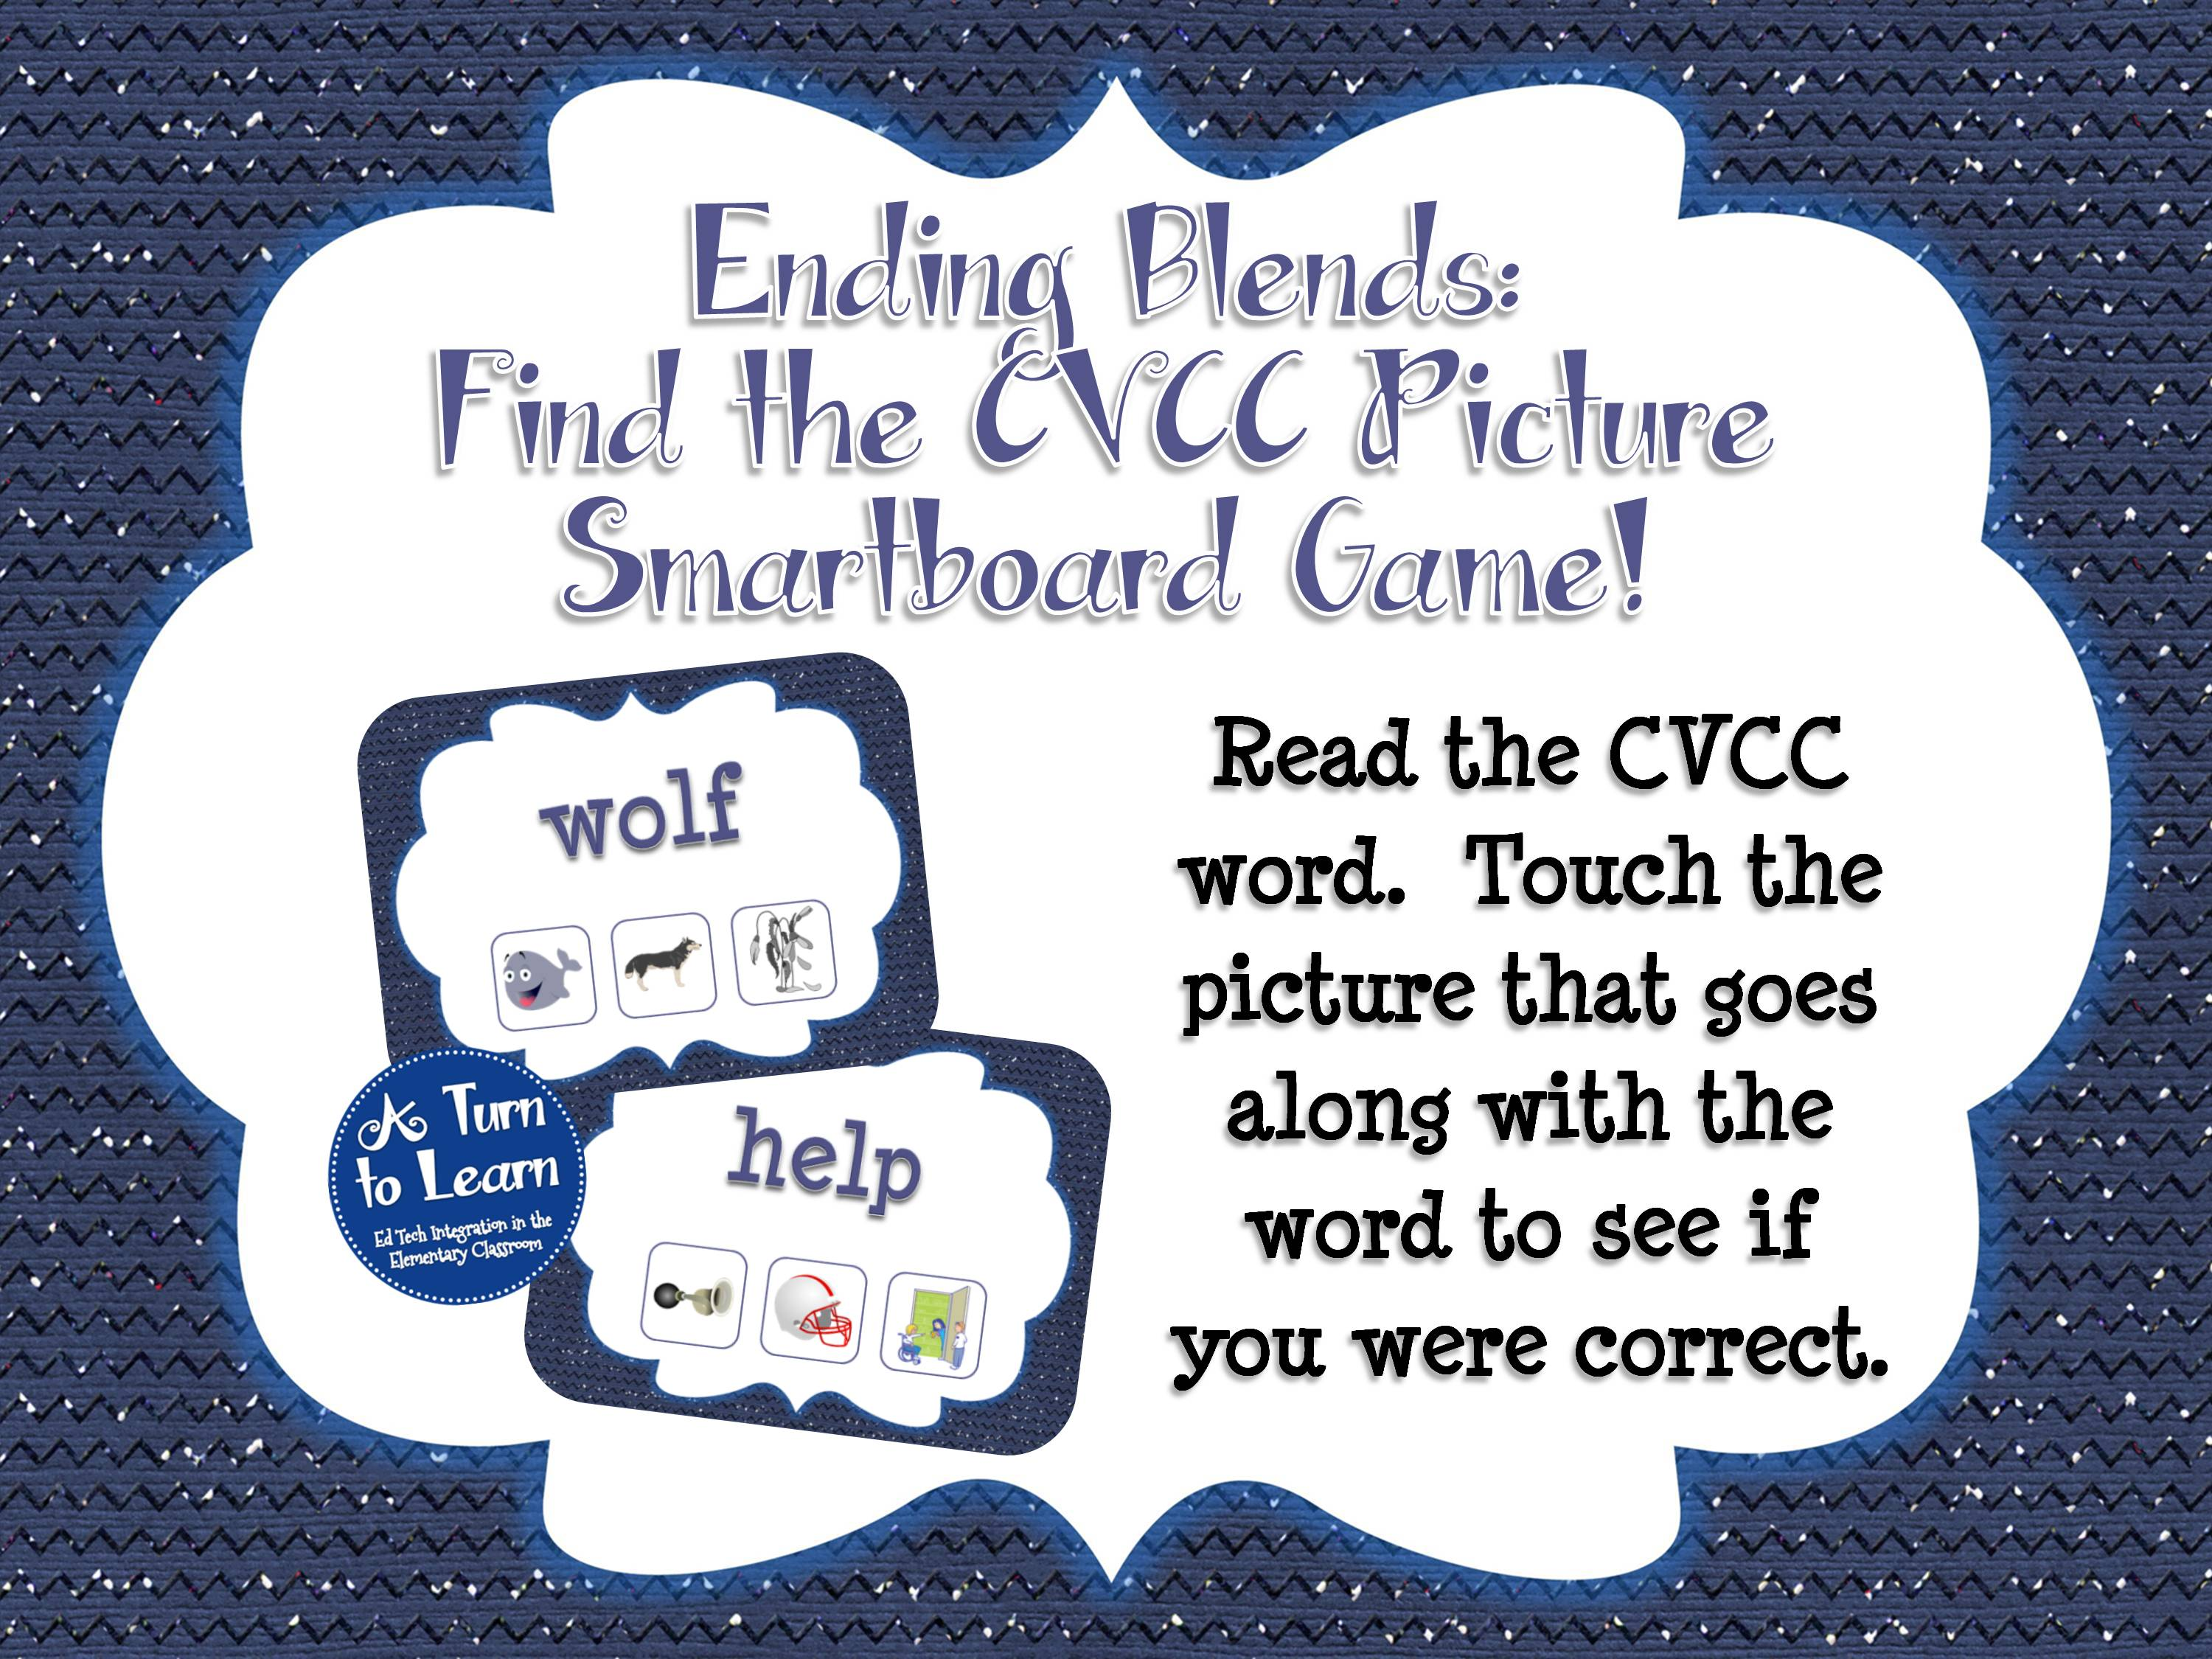 Ending Blends Smartboard Game - CVCC Find the Picture